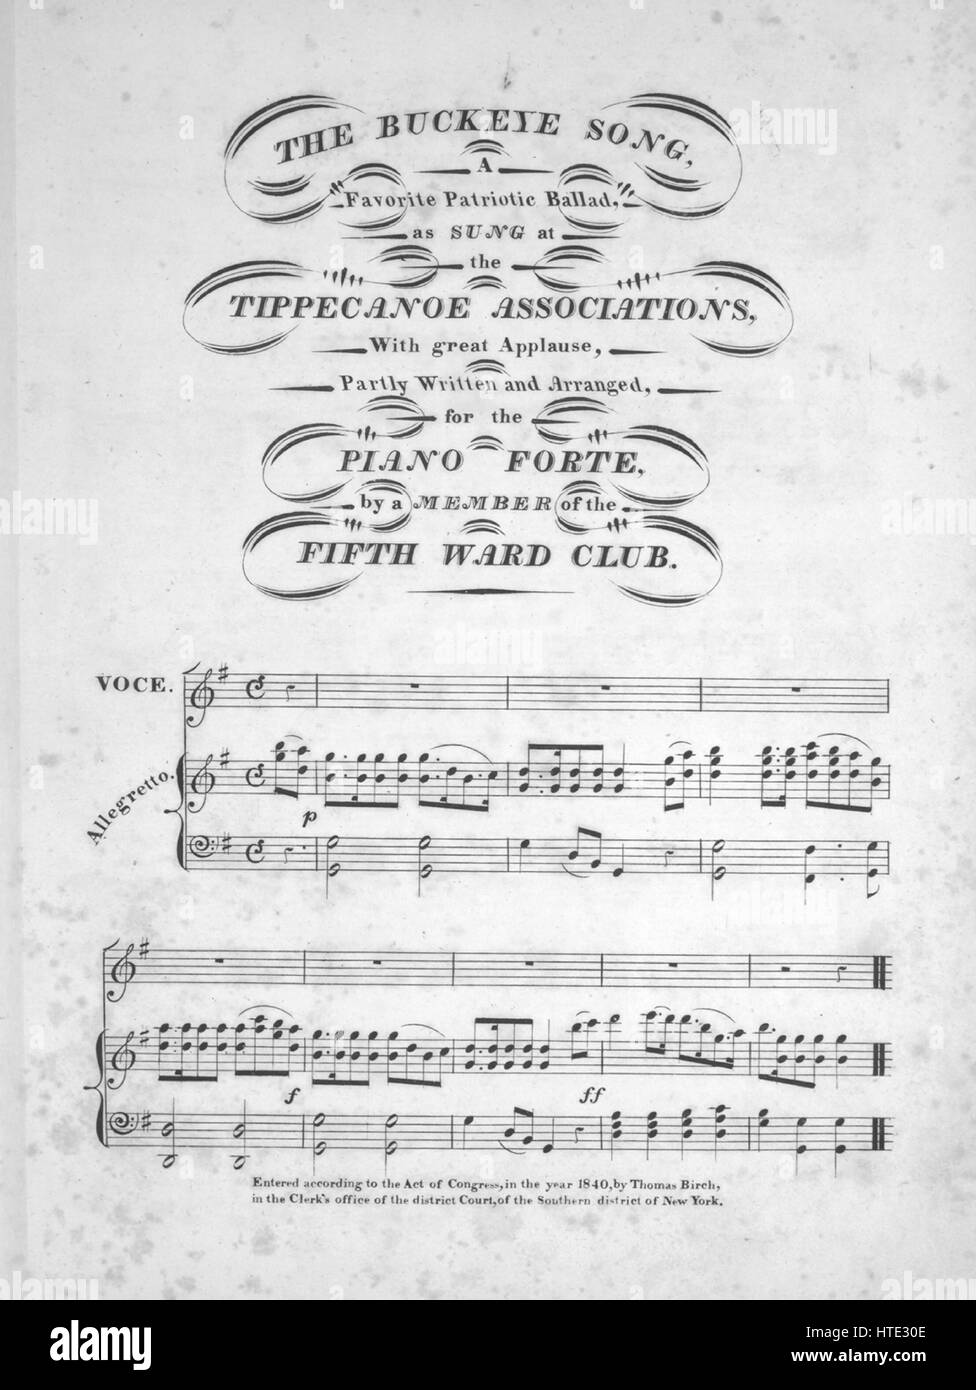 sheet music cover image of the song the buckeye song a favorite